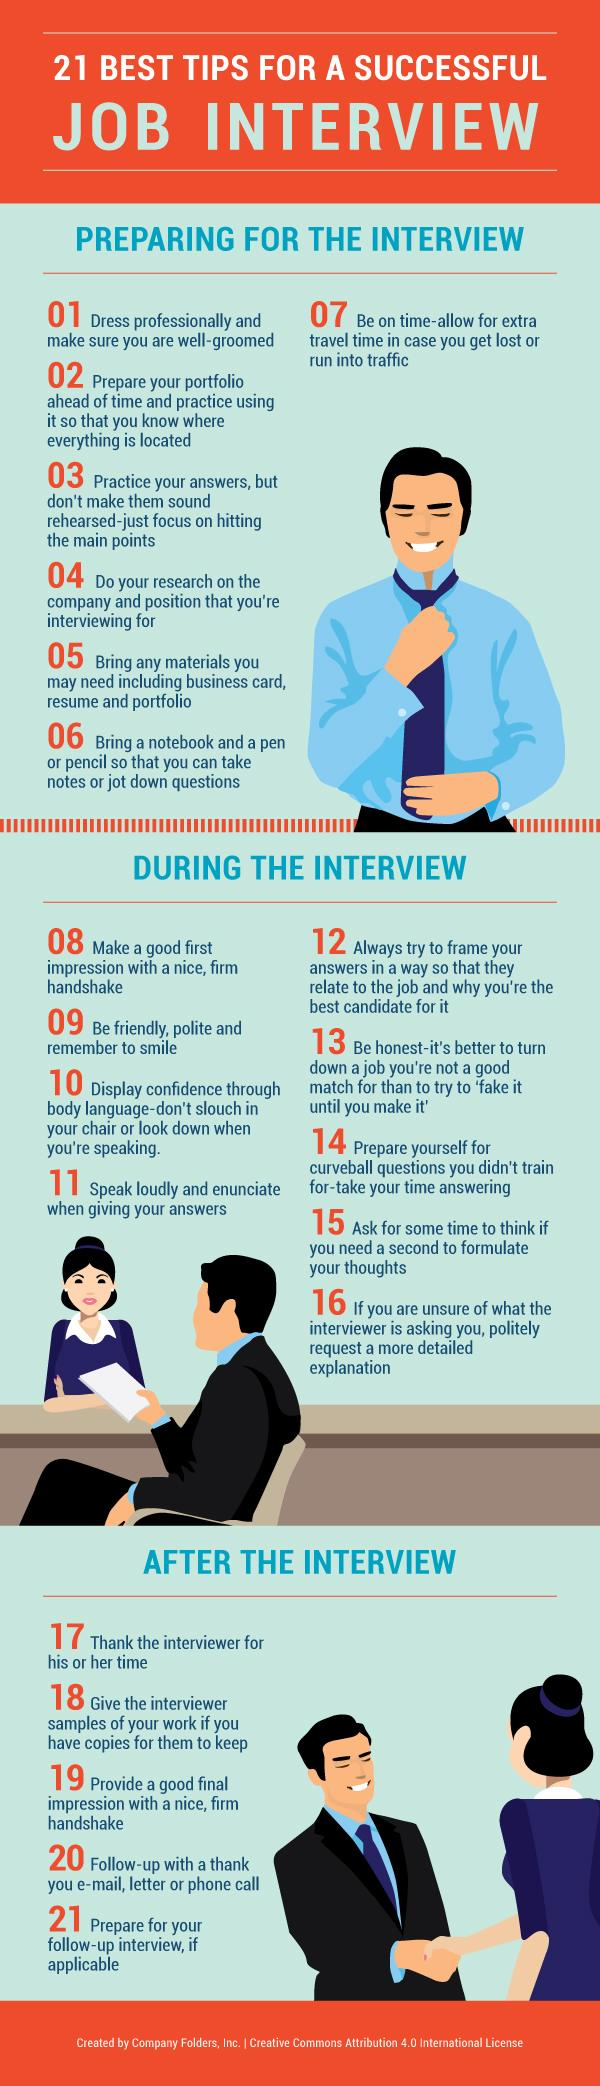 job-interview-info